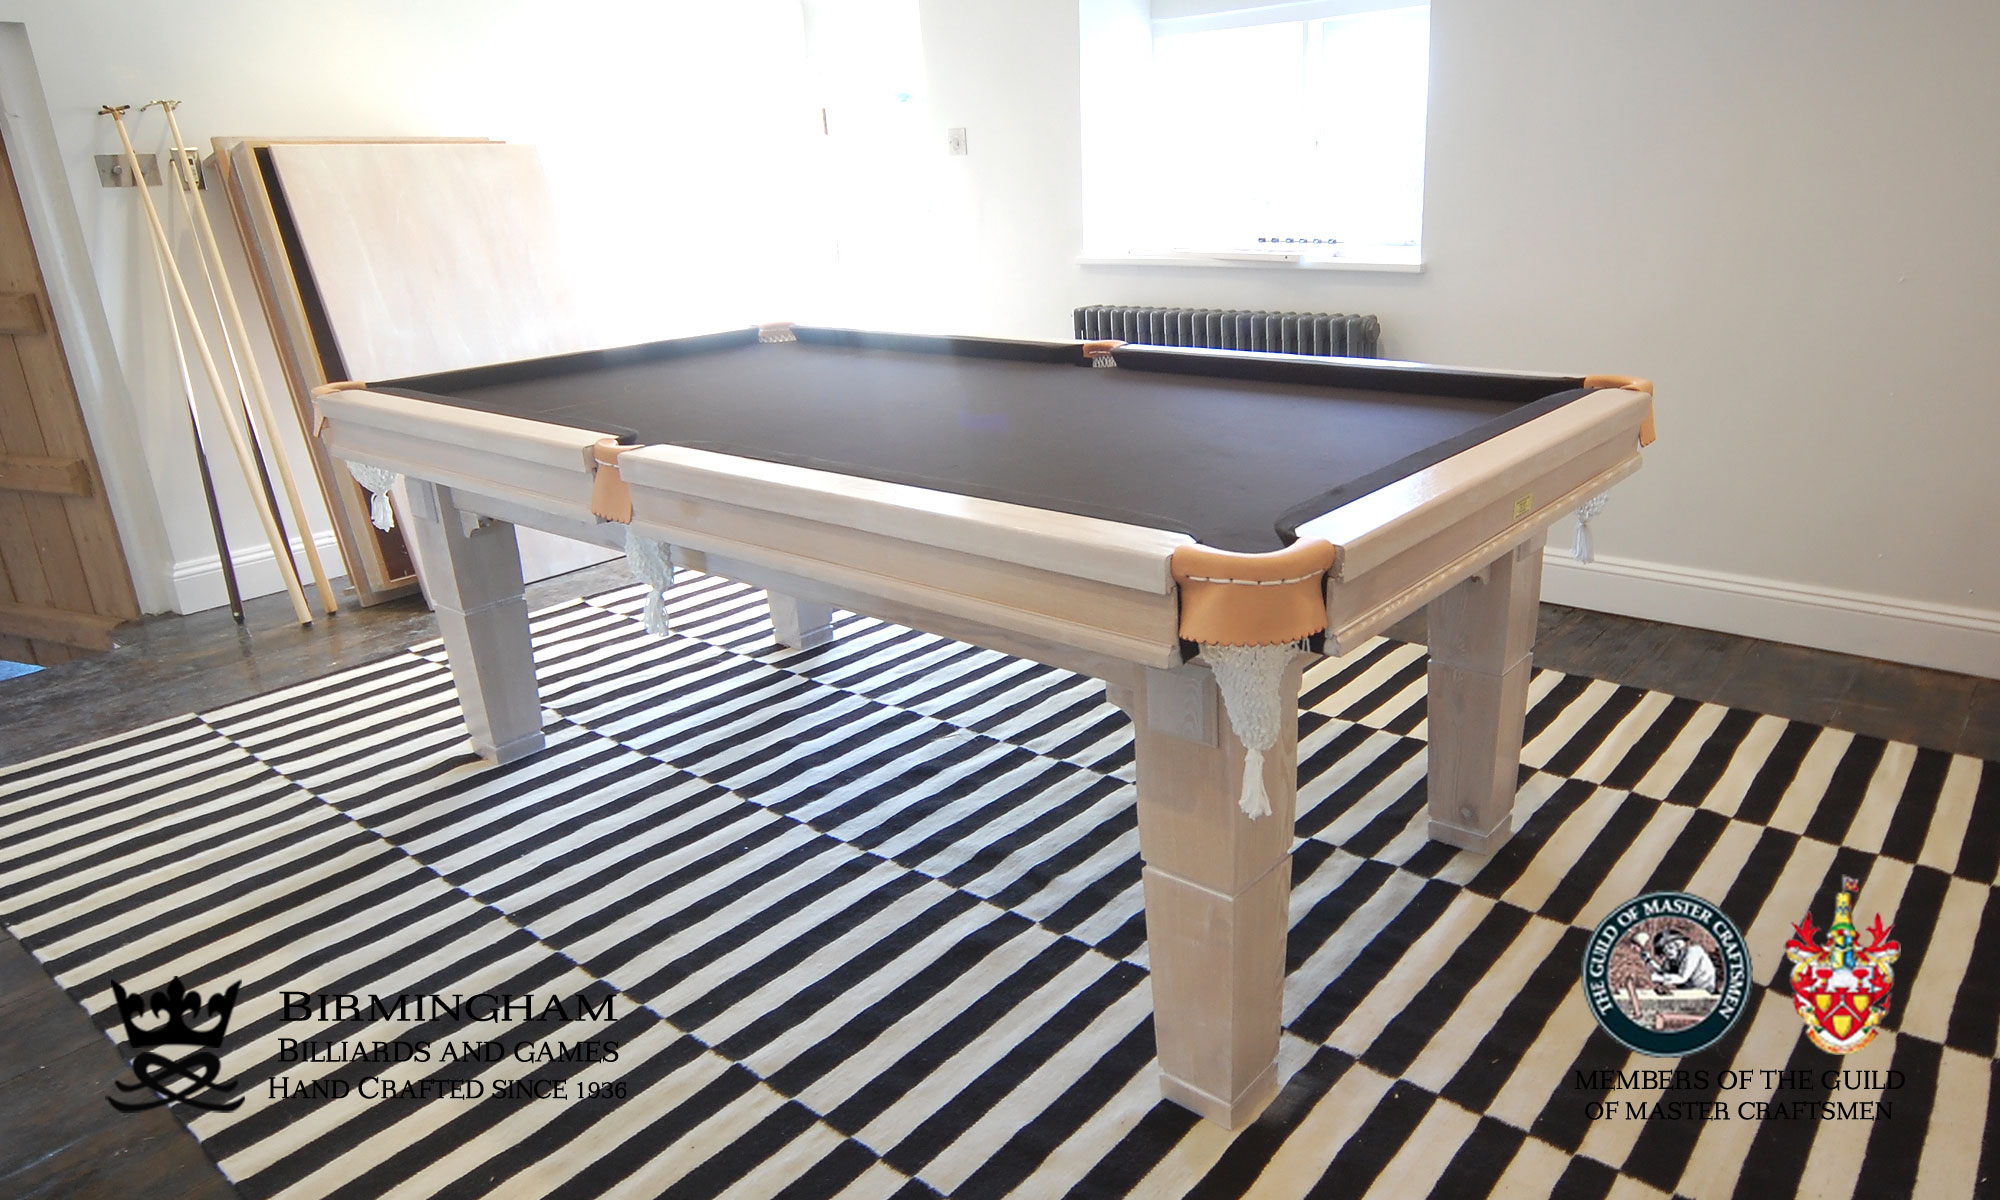 The Contemporary handmade pool table, limed oak finish, black baize